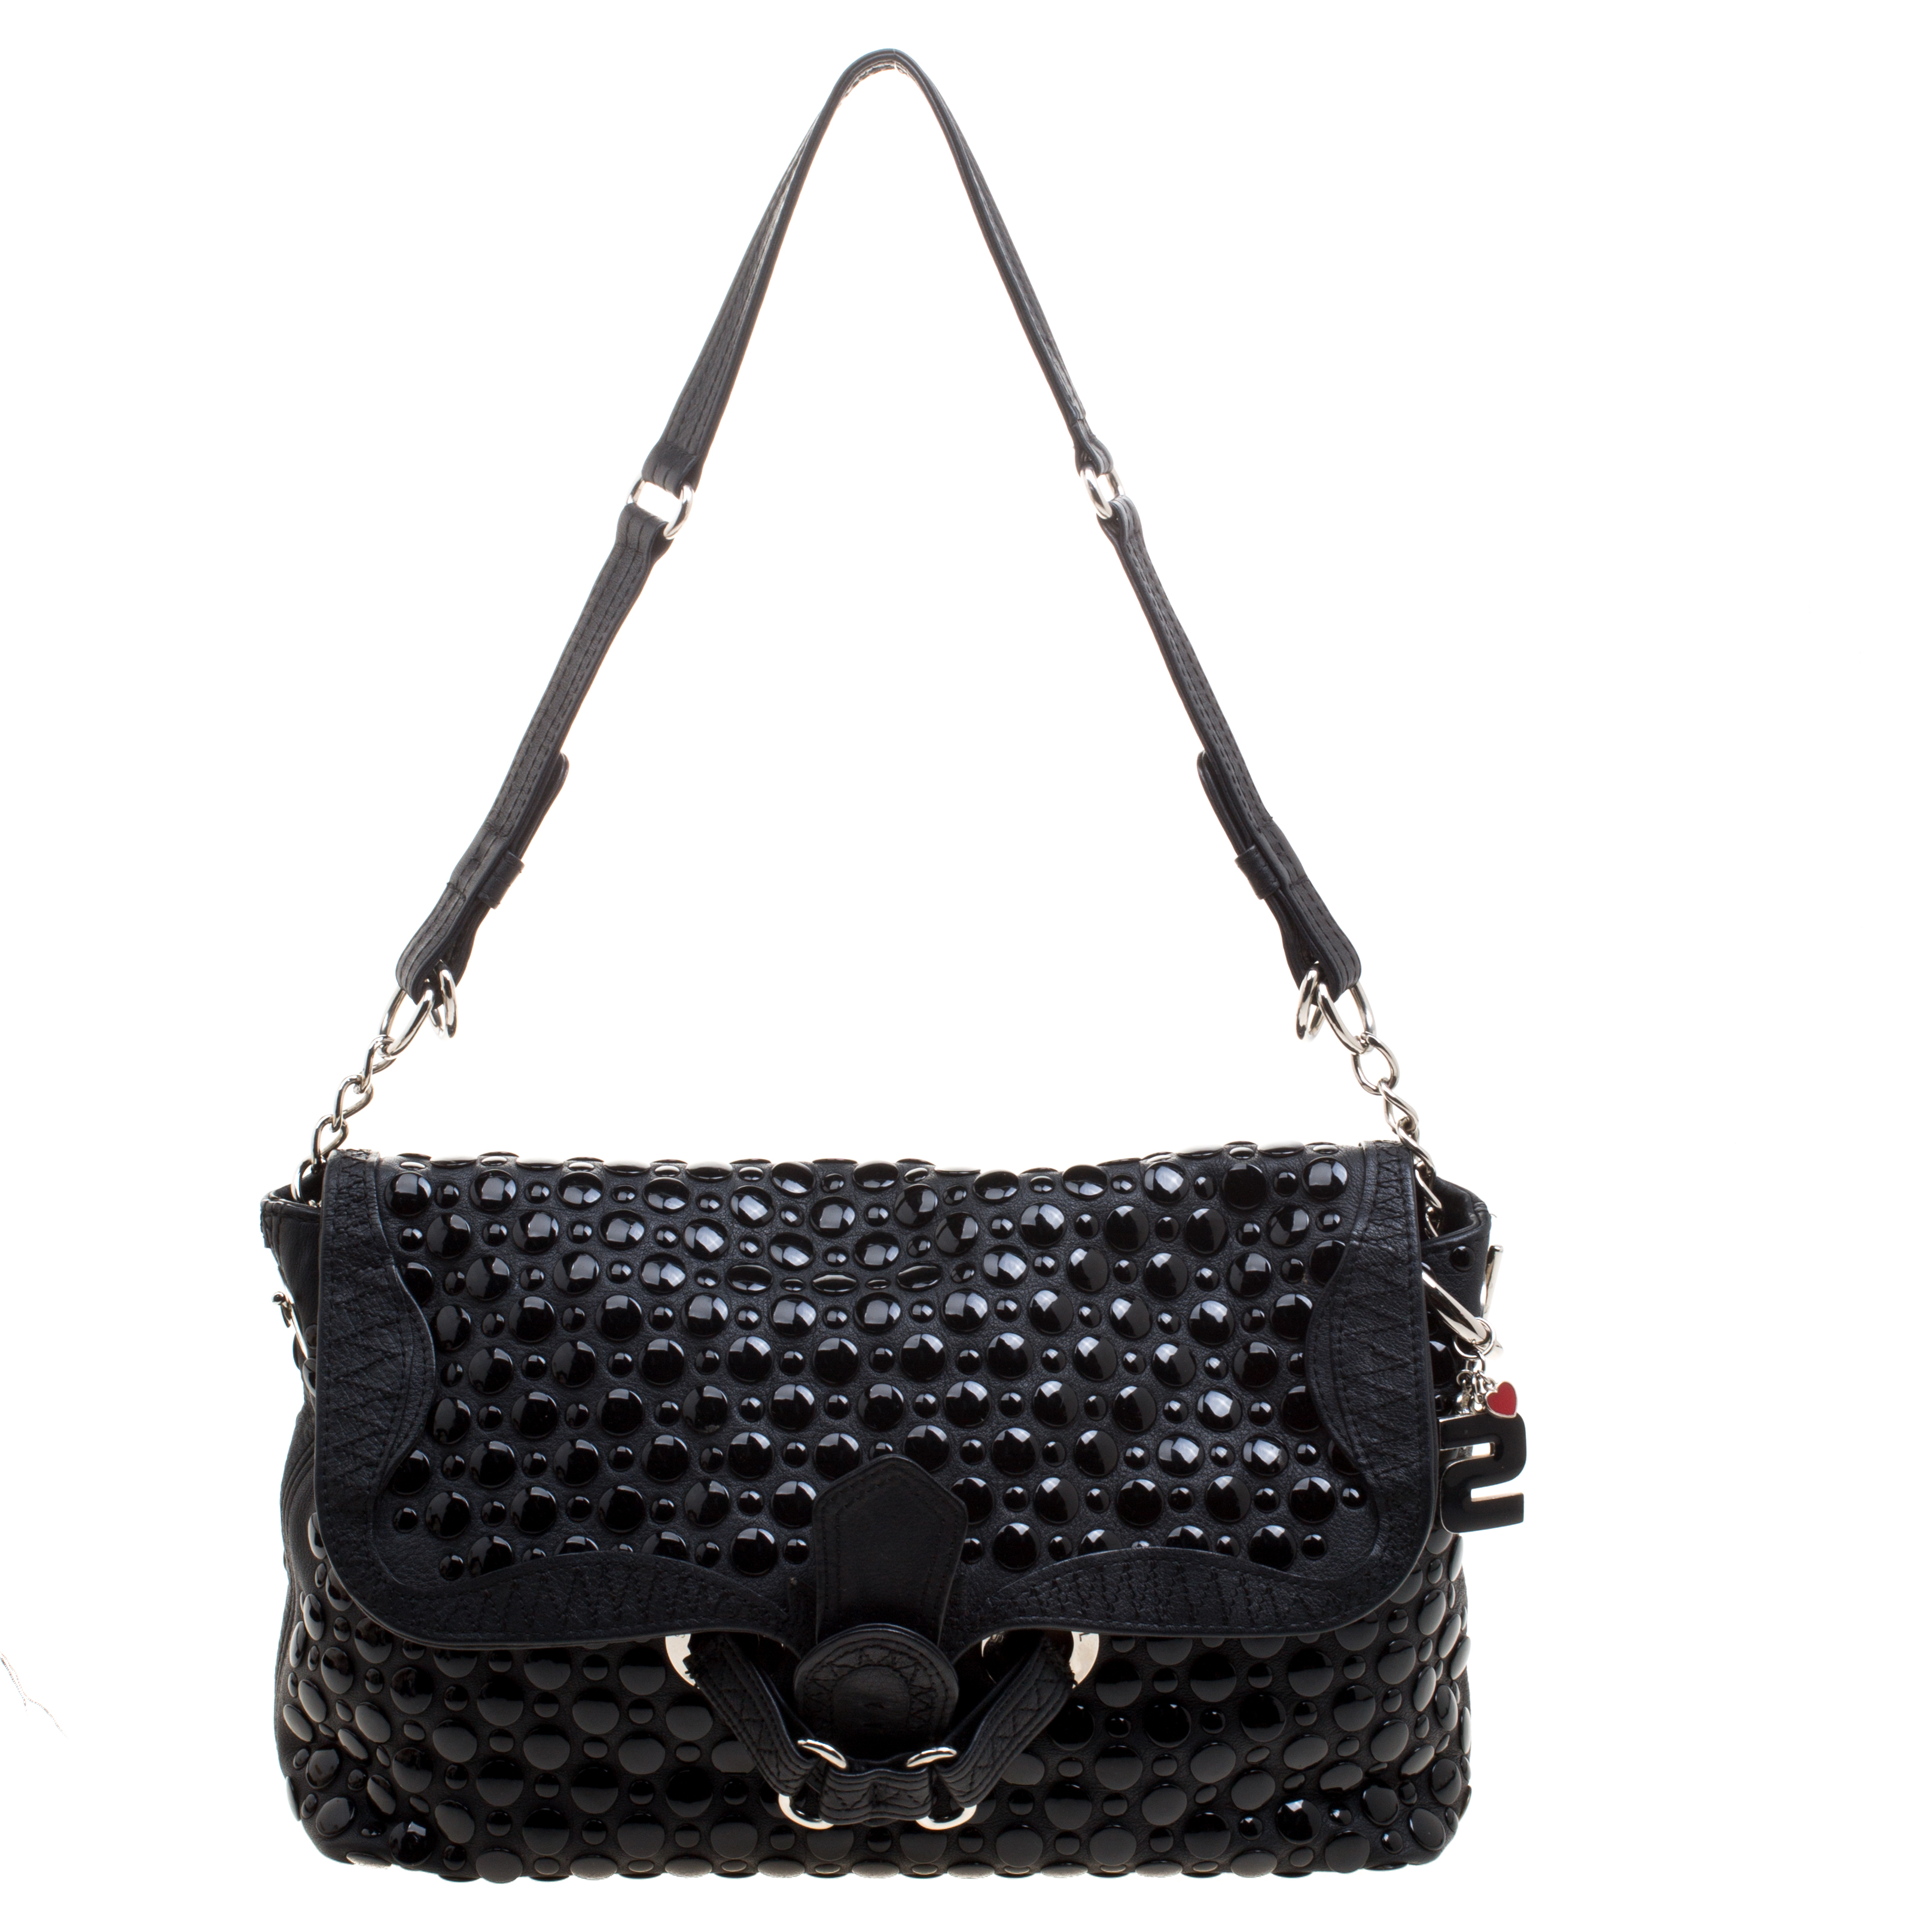 16cb378fd24f Buy Sonia Rykiel Black Leather Studded Shoulder Bag 118173 at best ...